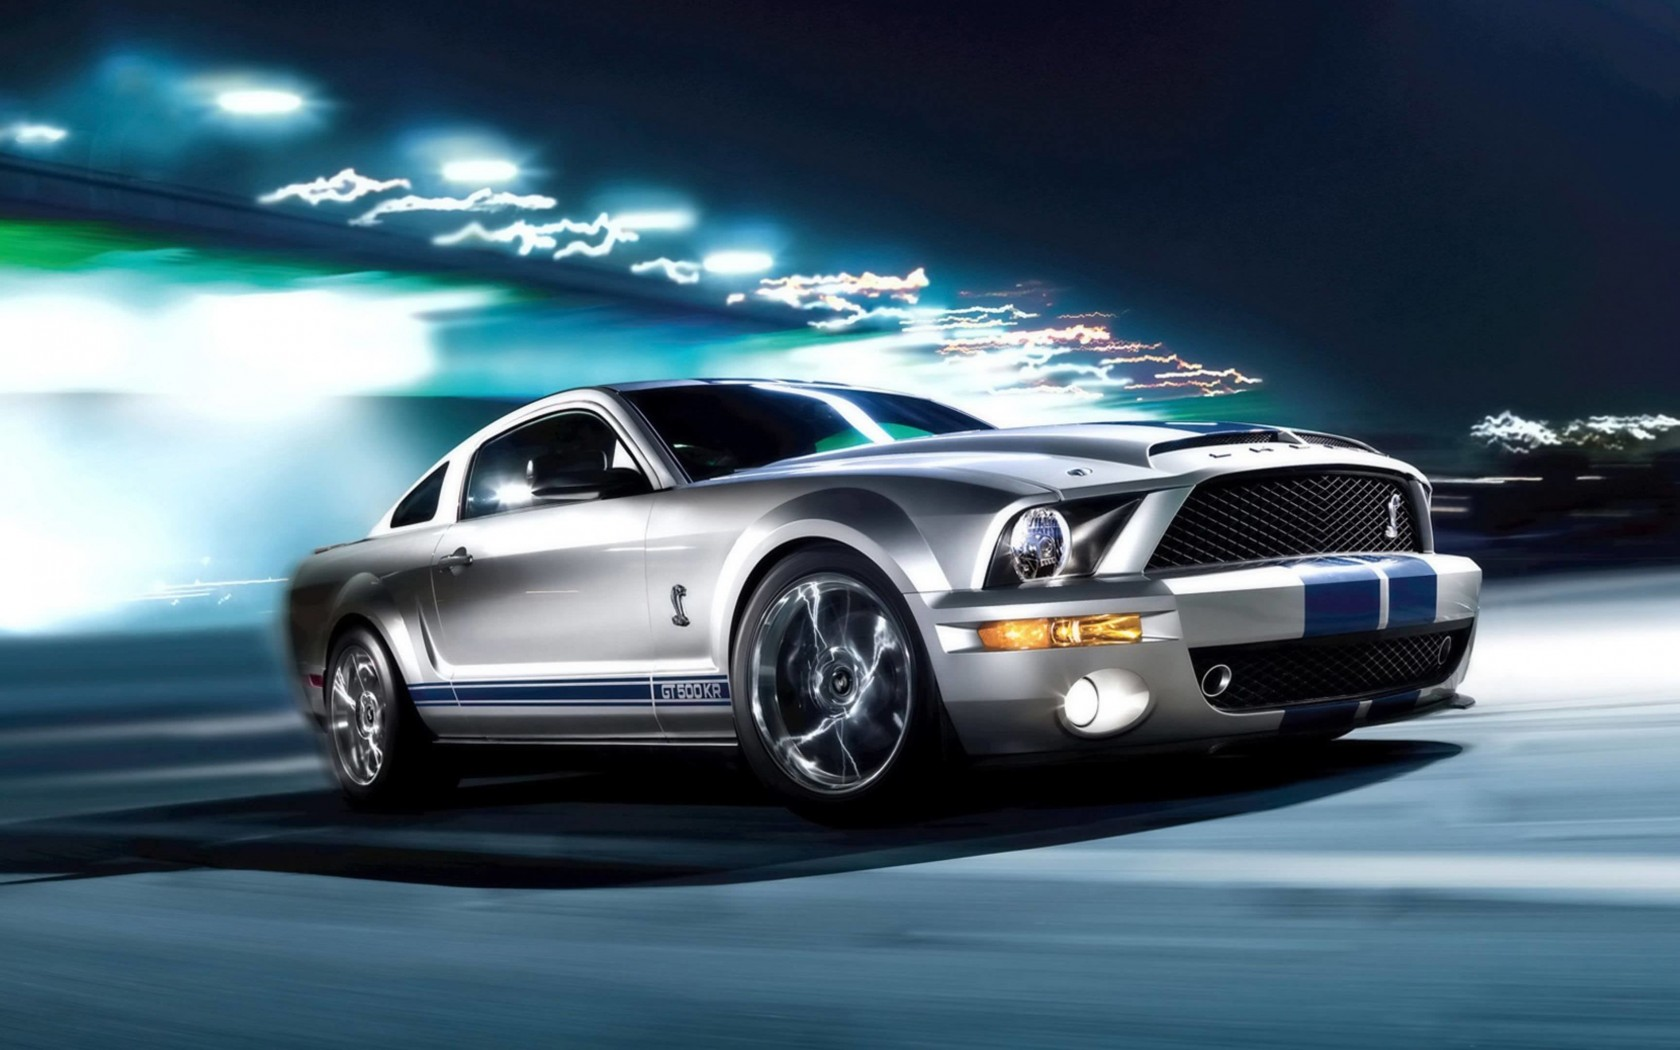 Ford Mustang Shelby GT500KR Wallpaper for Desktop 1680x1050